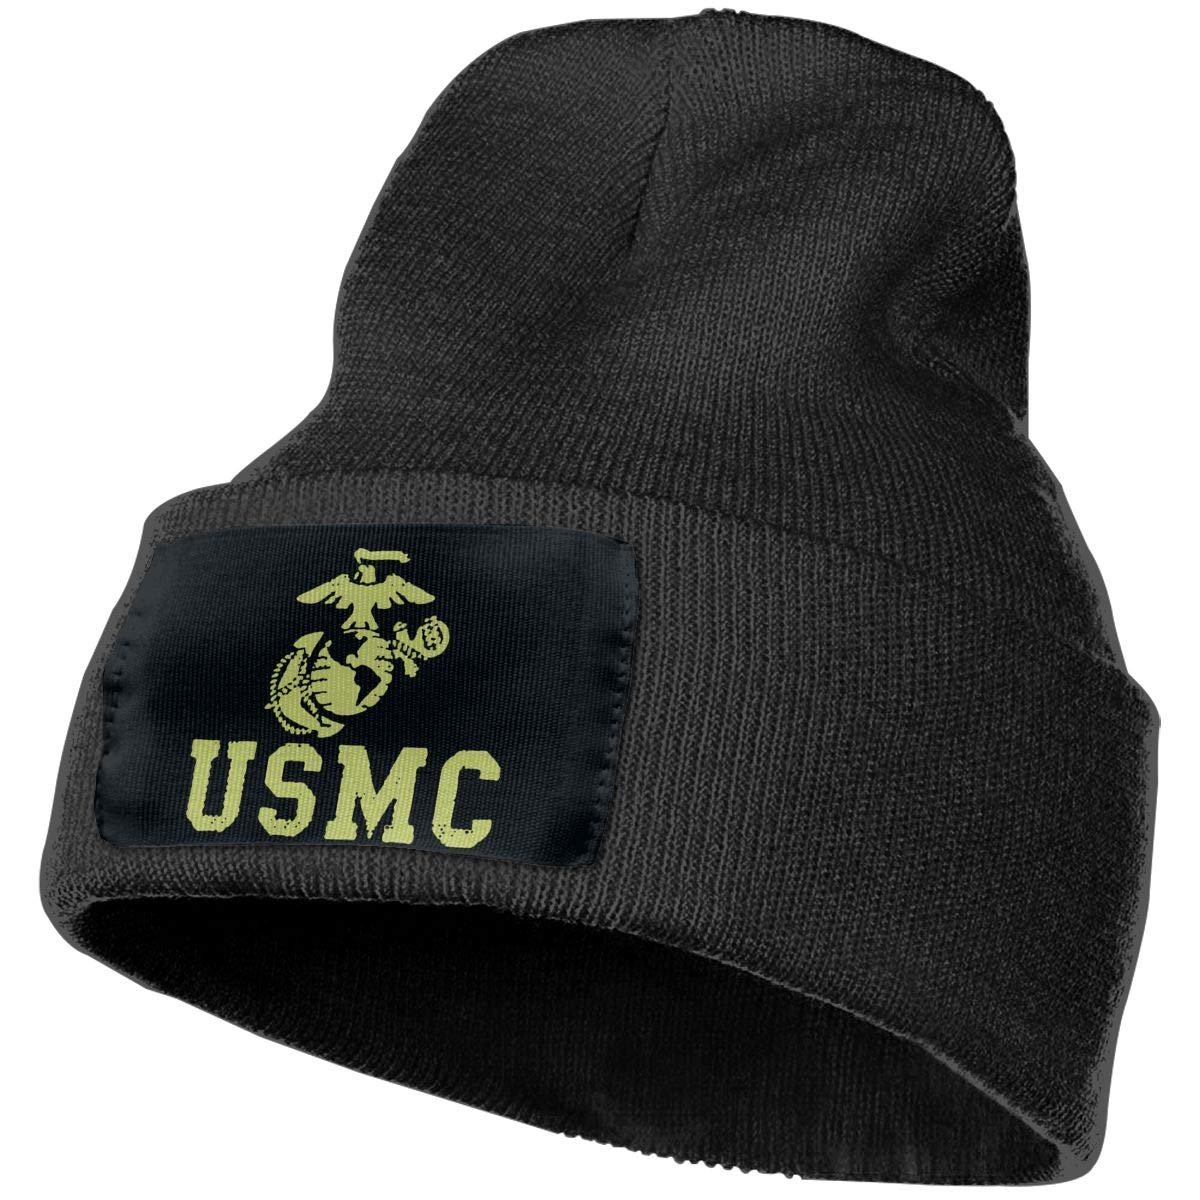 JimHappy USMC Winter Warm Hats,Knit Slouchy Thick Skull Cap Black